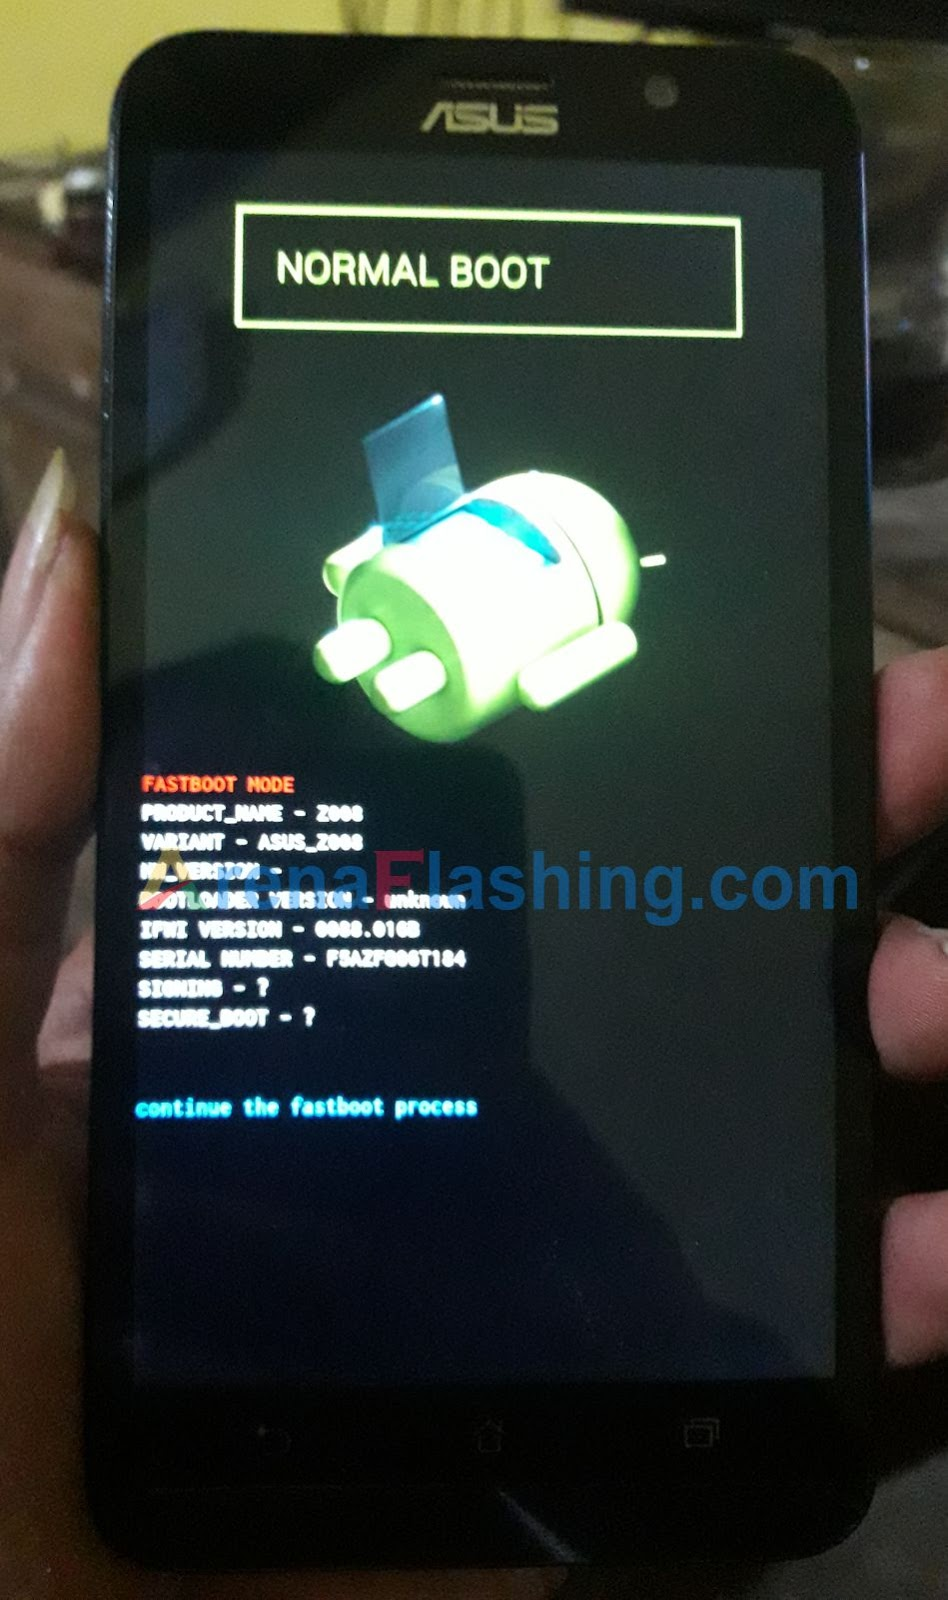 Cara Flashing Zenfone 2 : flashing, zenfone, Tutorial, Flash, Zenfone, Z008D, (ZE550ML), Tested, Flashing, Android, Upgrade, Downgrade, Firmware, Unbrick